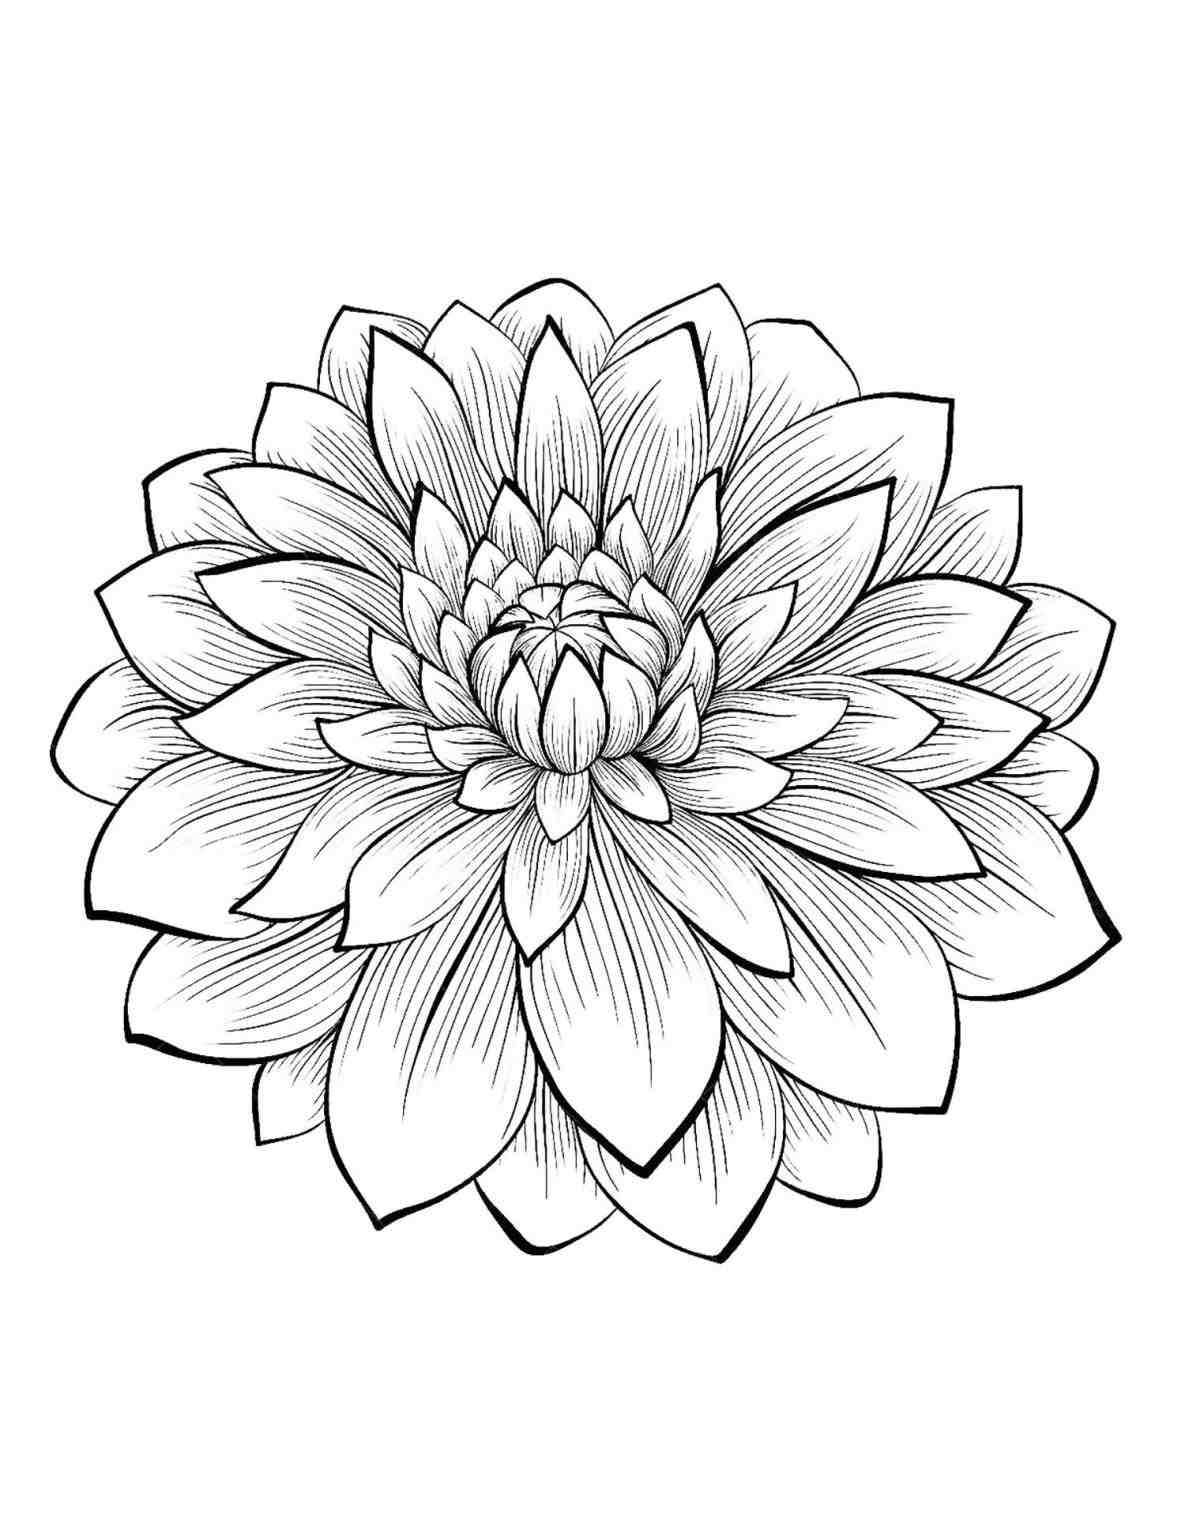 1185x1530 The Images Collection Of Hard Drawings Of Flowers Flower Pencil